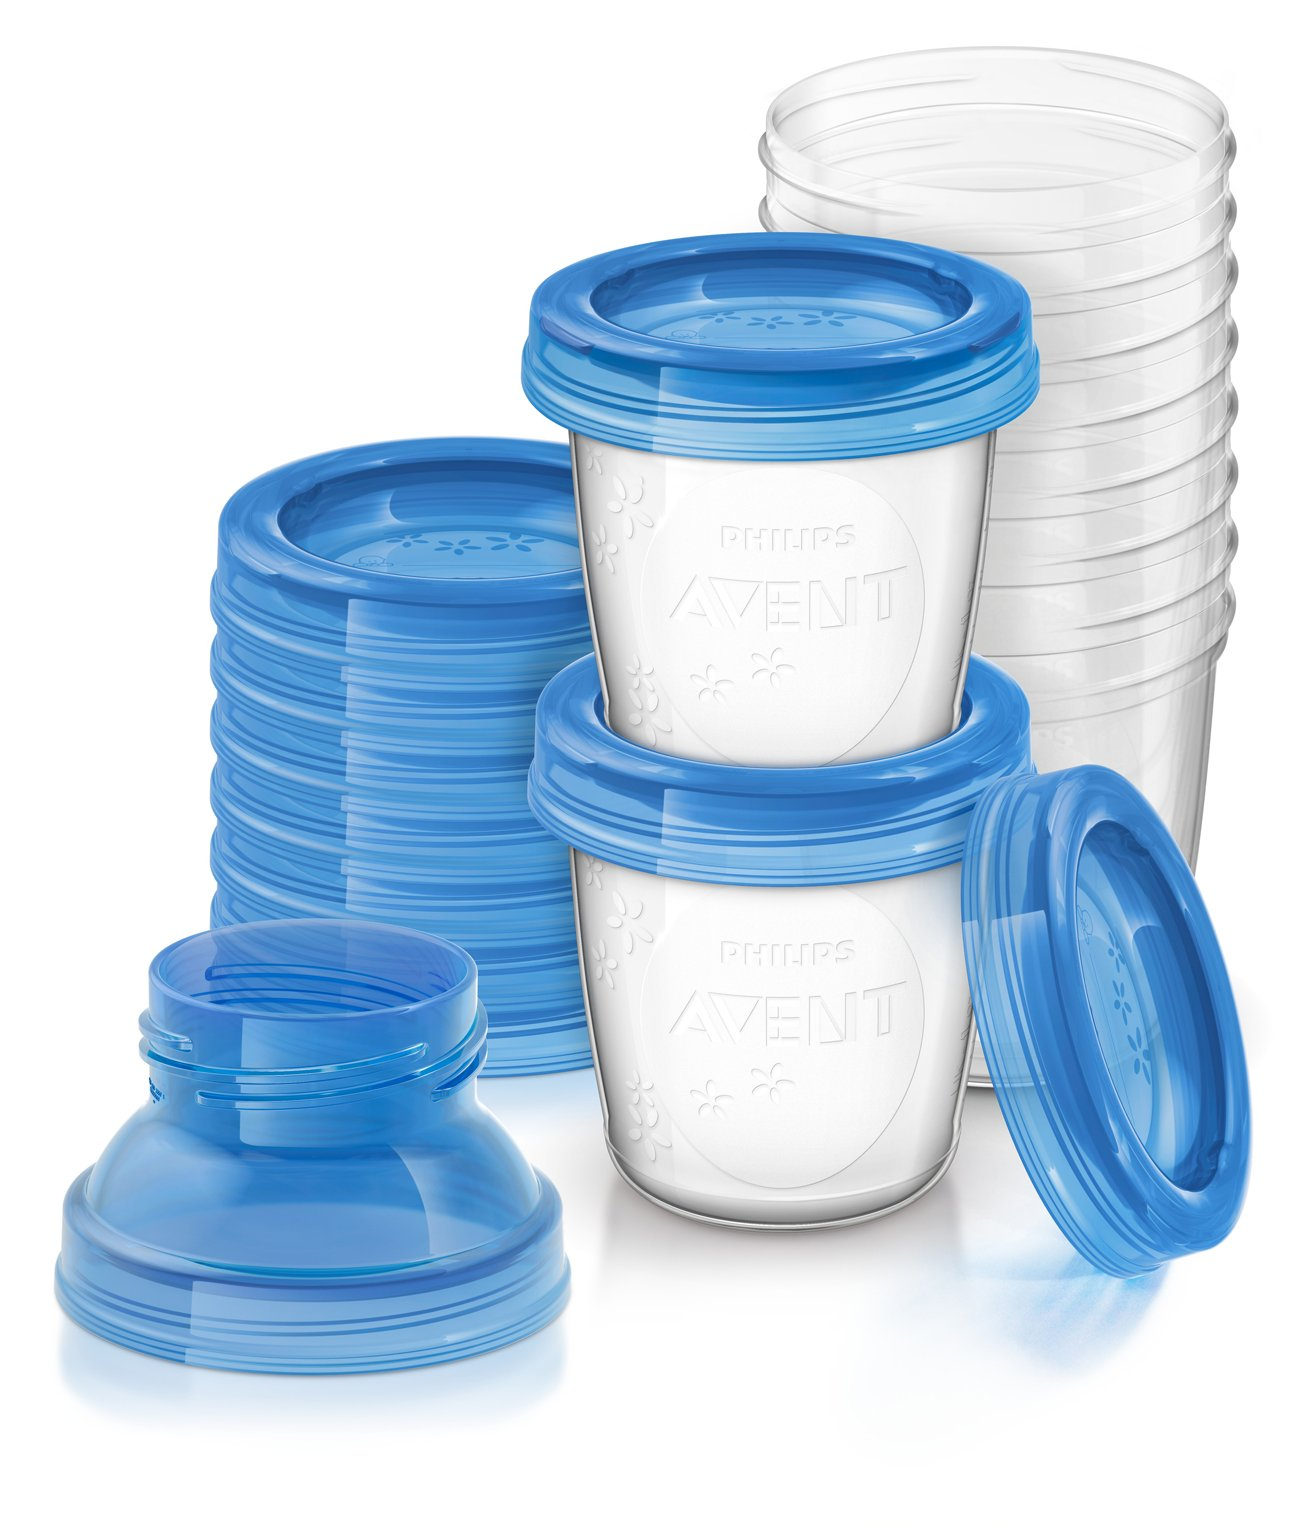 Philips AVENT Breast Milk Storage Cups, 6 Ounce (Pack of 10) by Philips AVENT